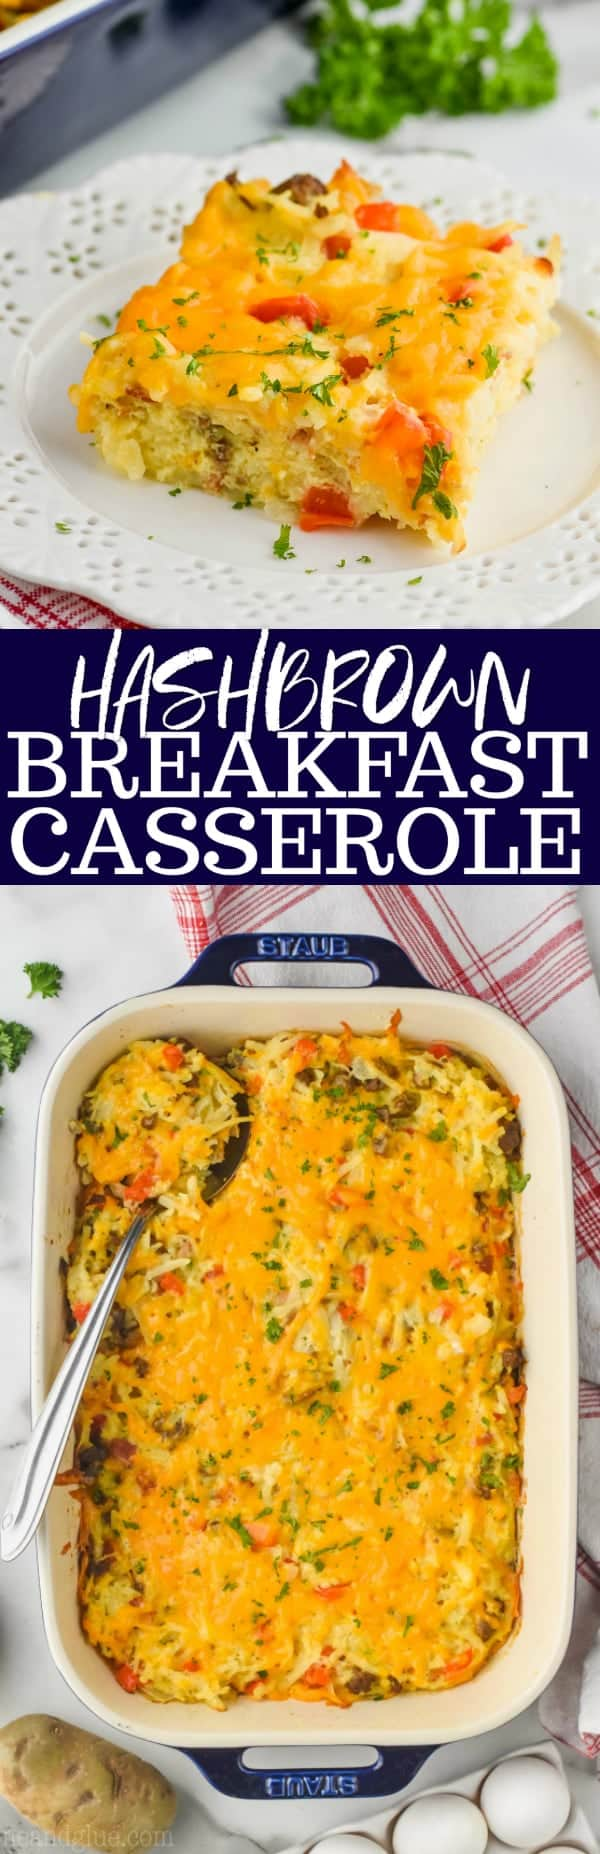 collage of hash brown egg casserole